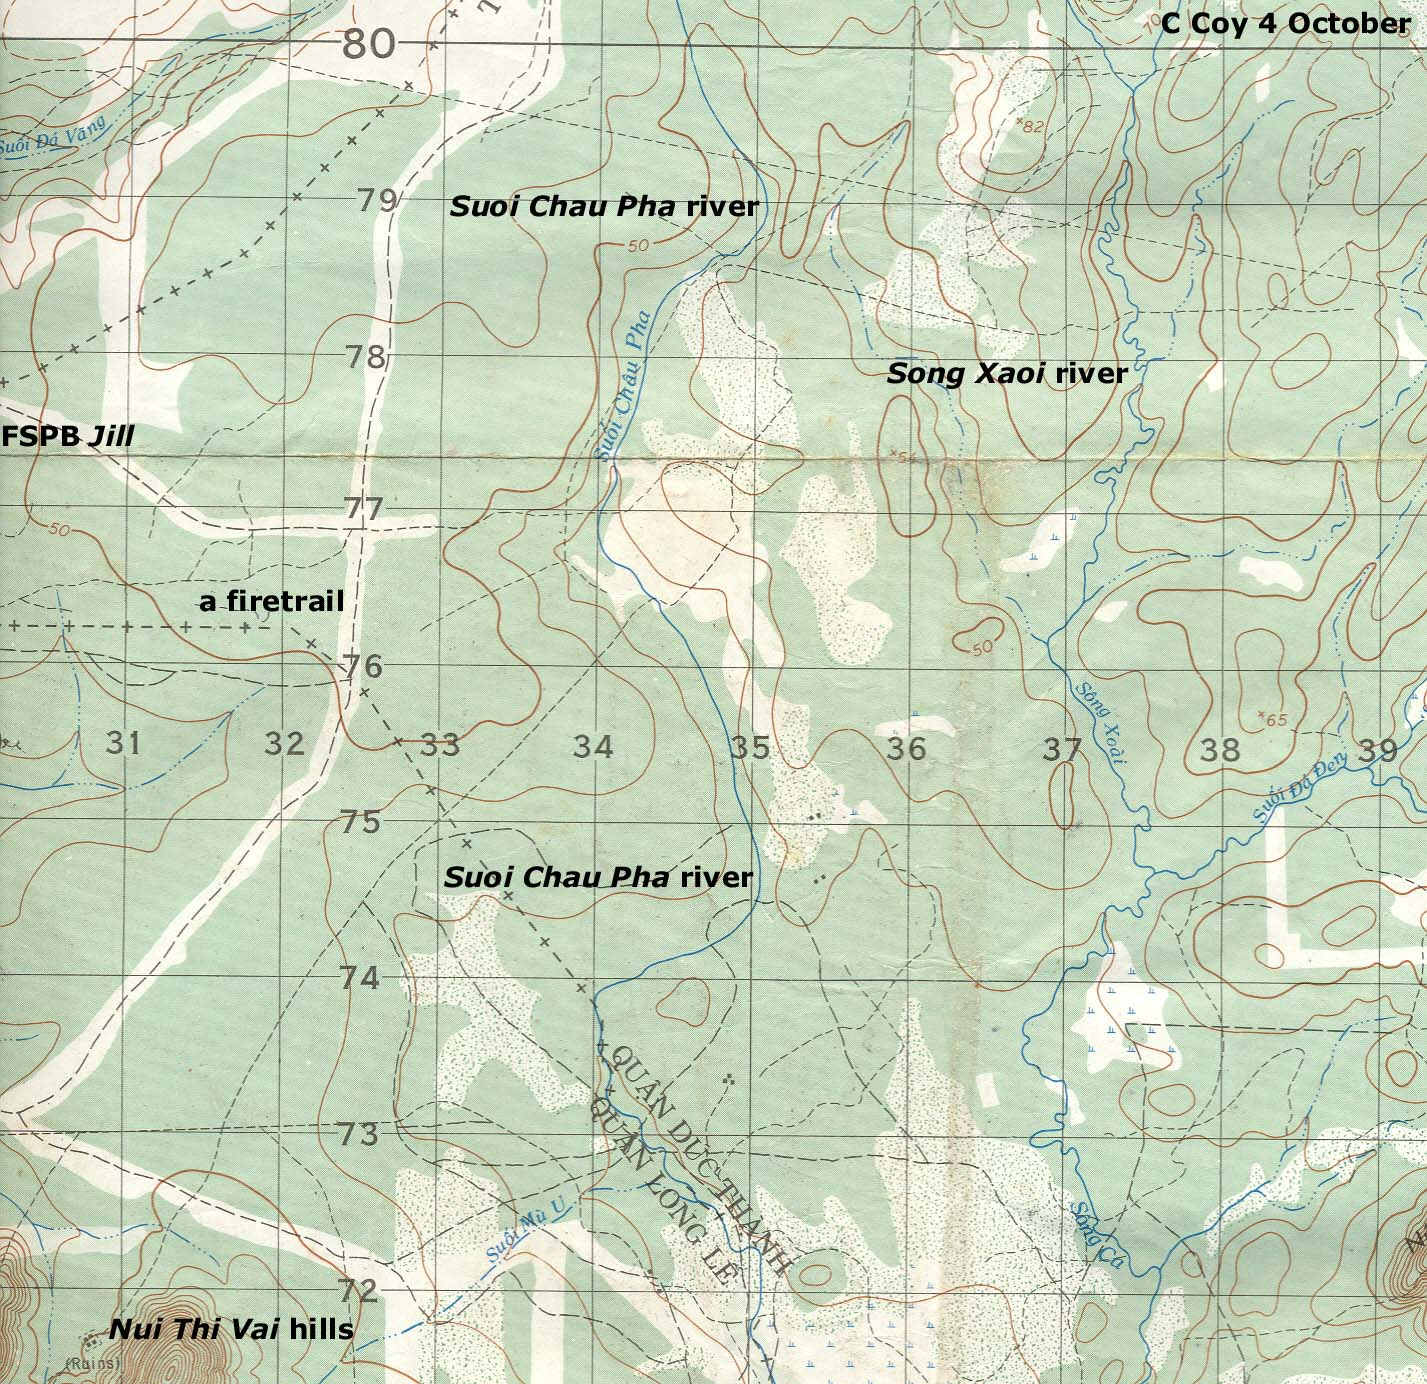 YS series map of Hat Dich area north-west of Nui Dat